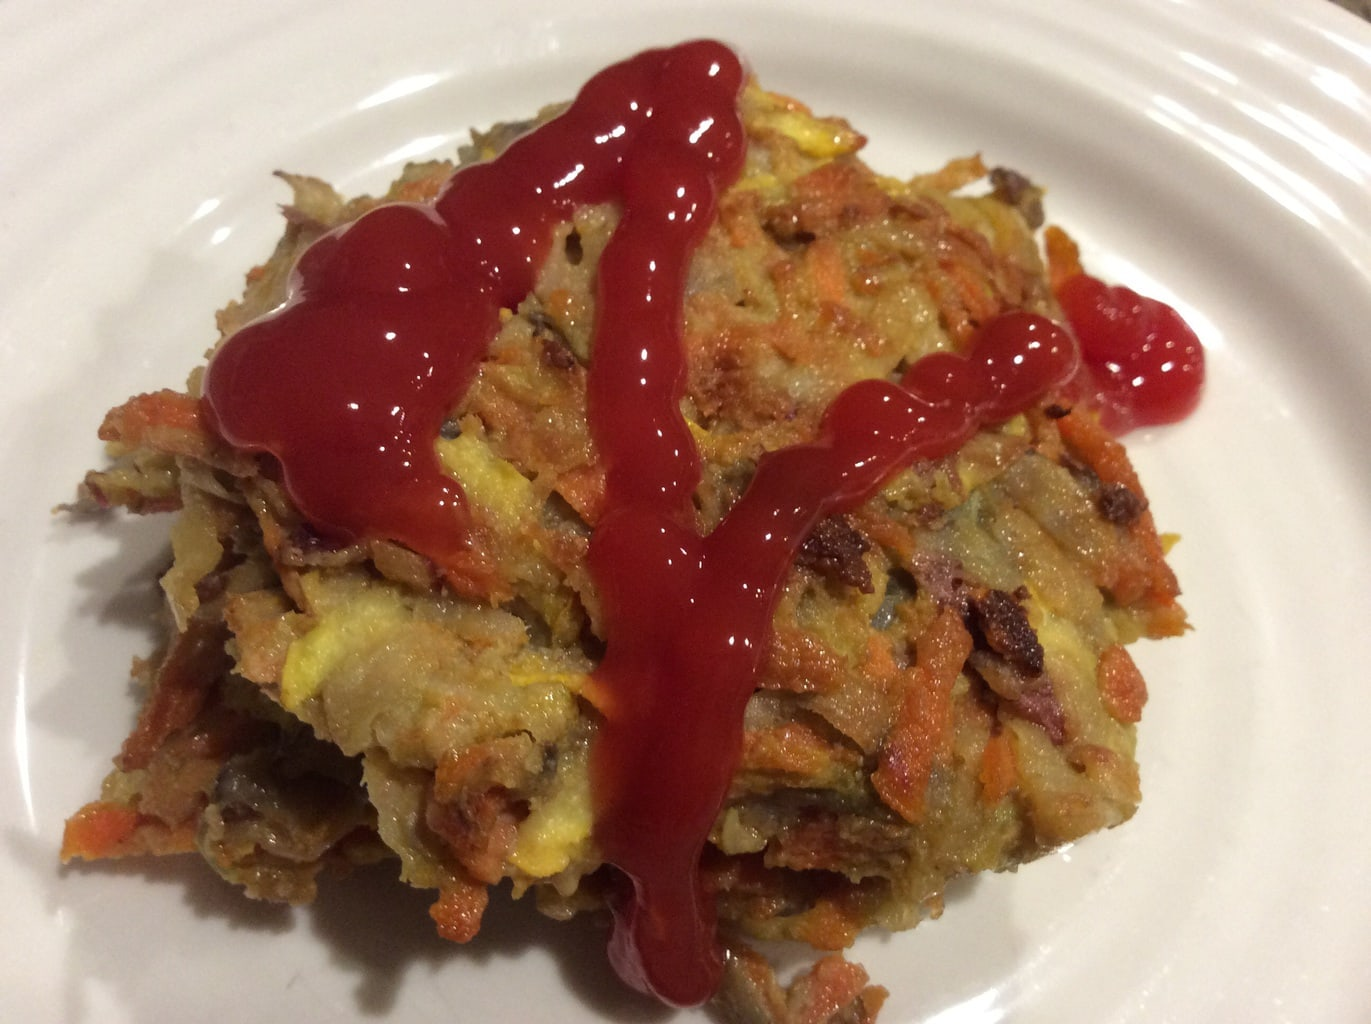 Veggie pancakes on a white plate and drizzled with ketchup.